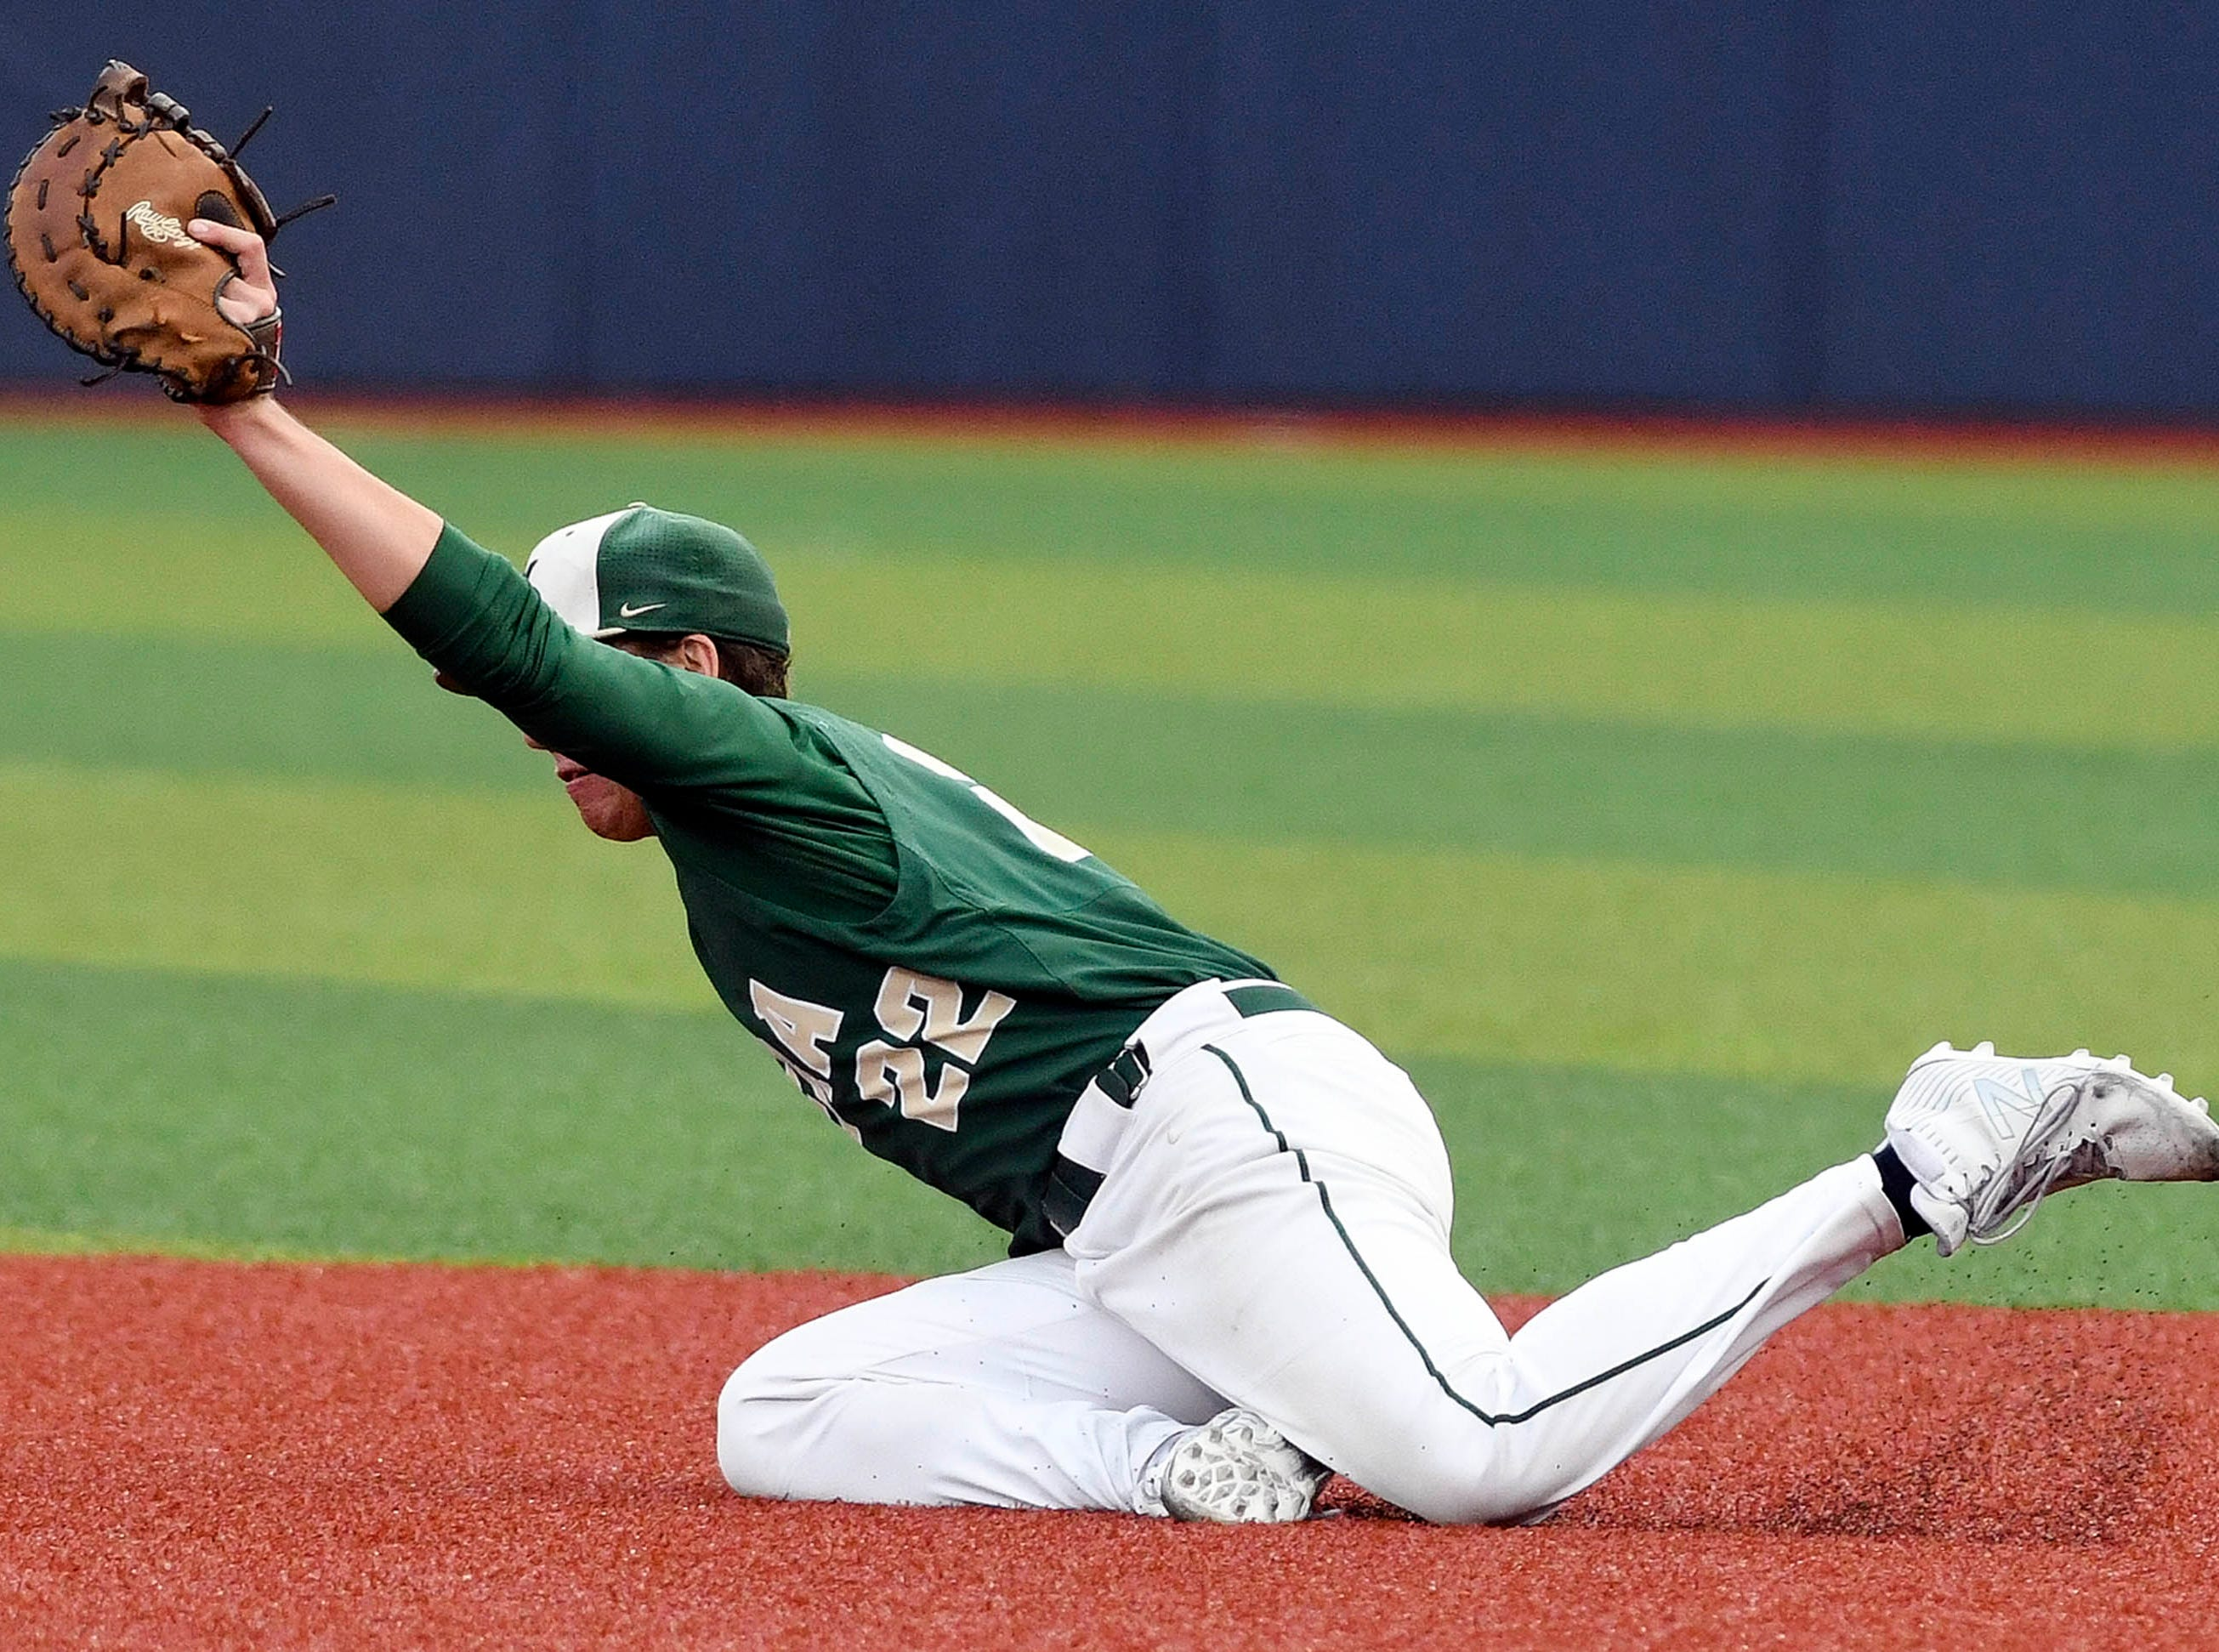 Brady Janssen of Viera makes a diving catch during Wednesday's game at USSSA Space Coast Stadium.